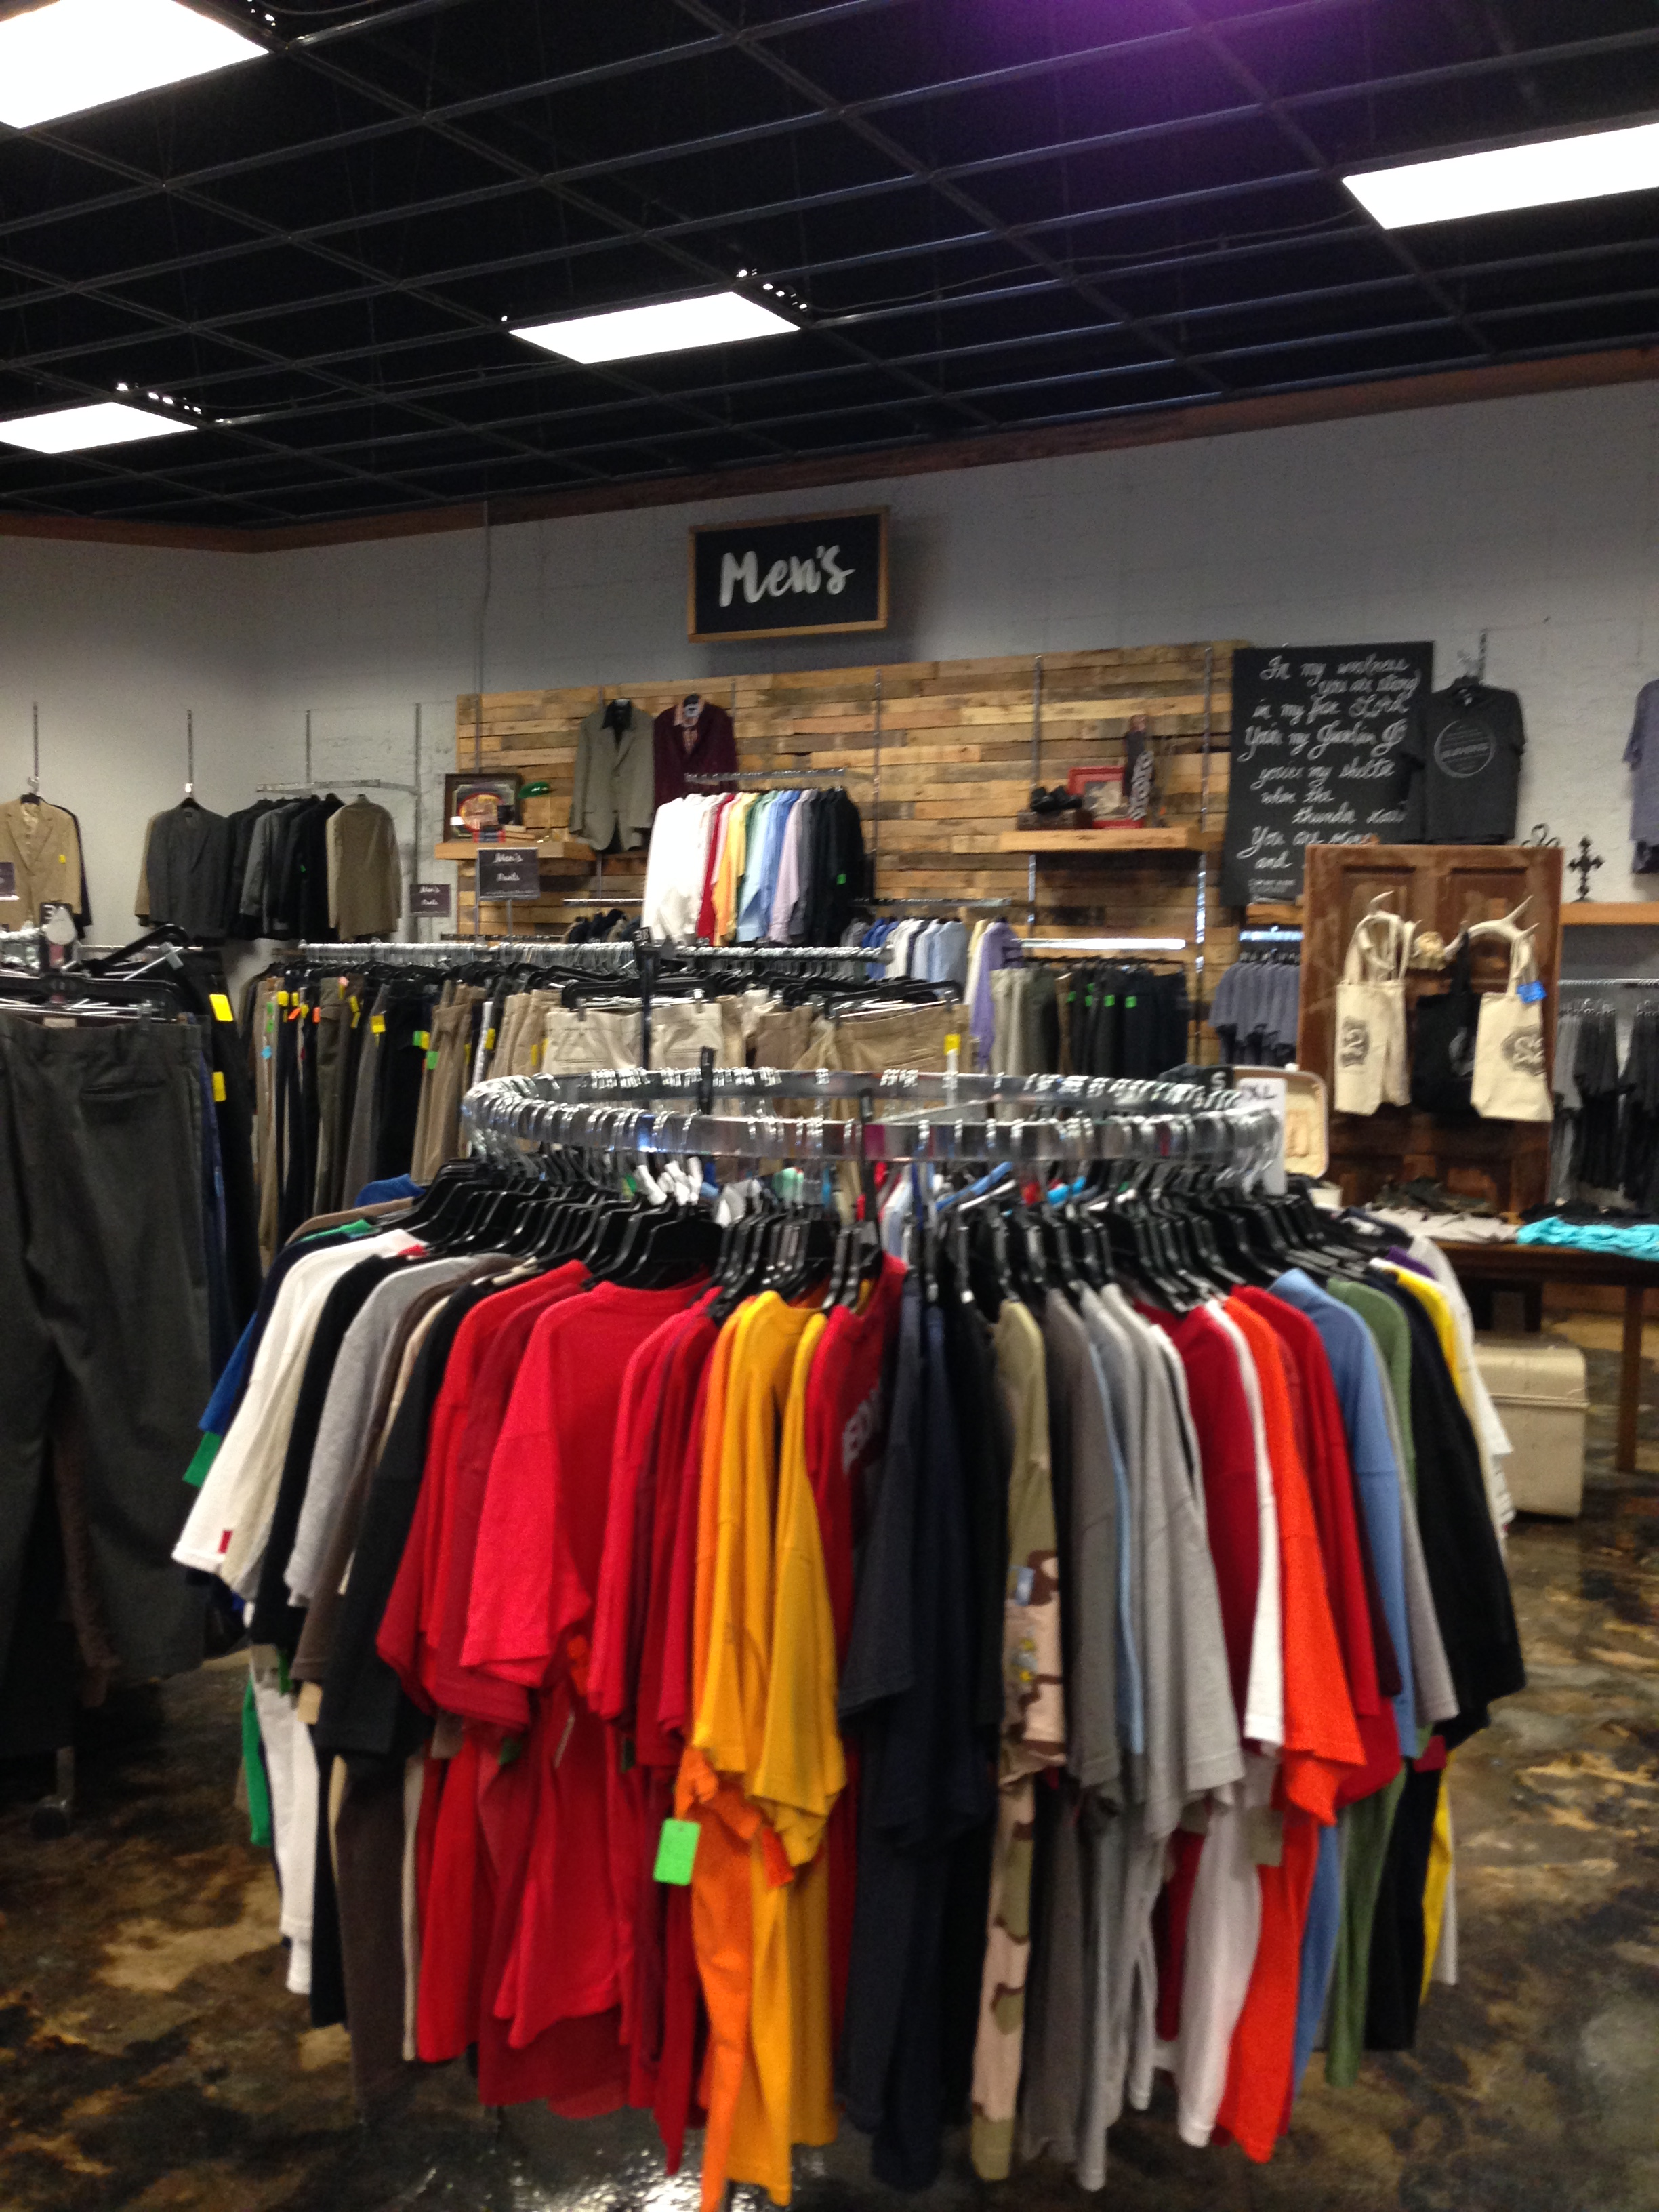 Perfect Hopeu0027s Closet Located In Unit 44 At 14286 San Pablo Rd, Jacksonville Beach,  FL 32250 Provides The Community Of Jacksonville With Affordable Clothing,  ...